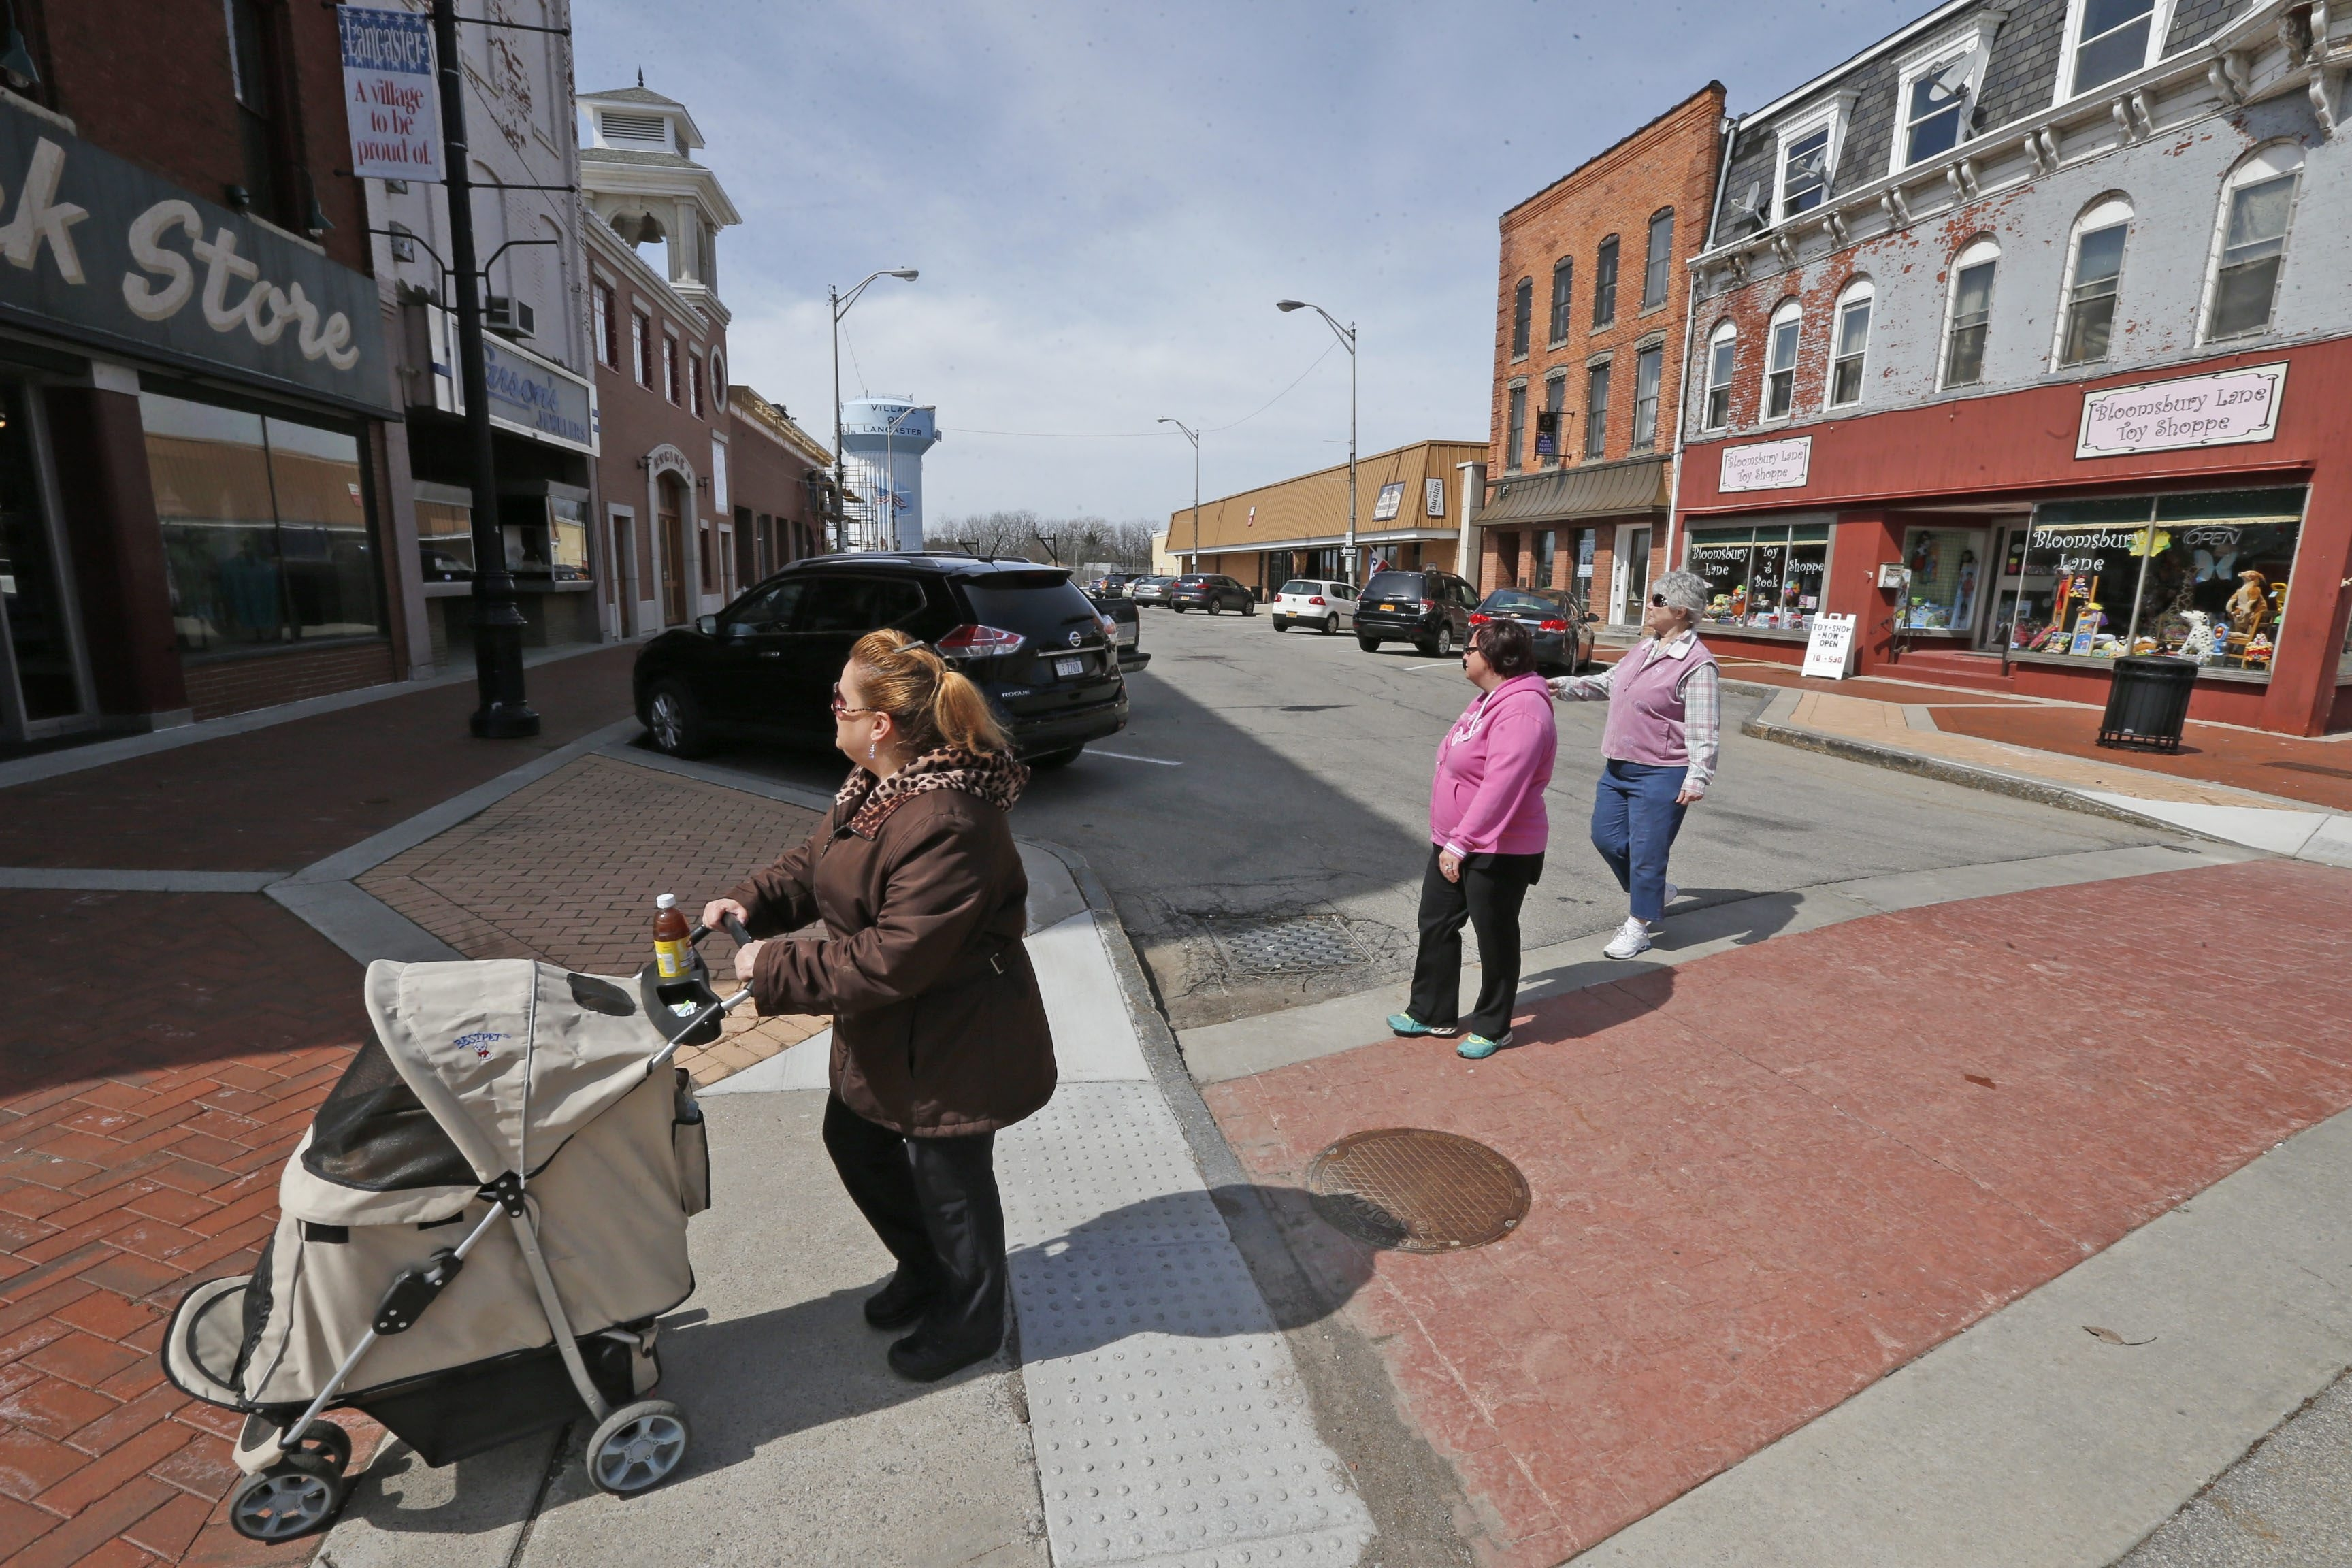 """""""The Village of Lancaster is not going to dump $3 million into a dream,"""" Trustee William C. Schroeder said of a Facebook community group seeking to extend West Main Street past the dead end, shown here."""